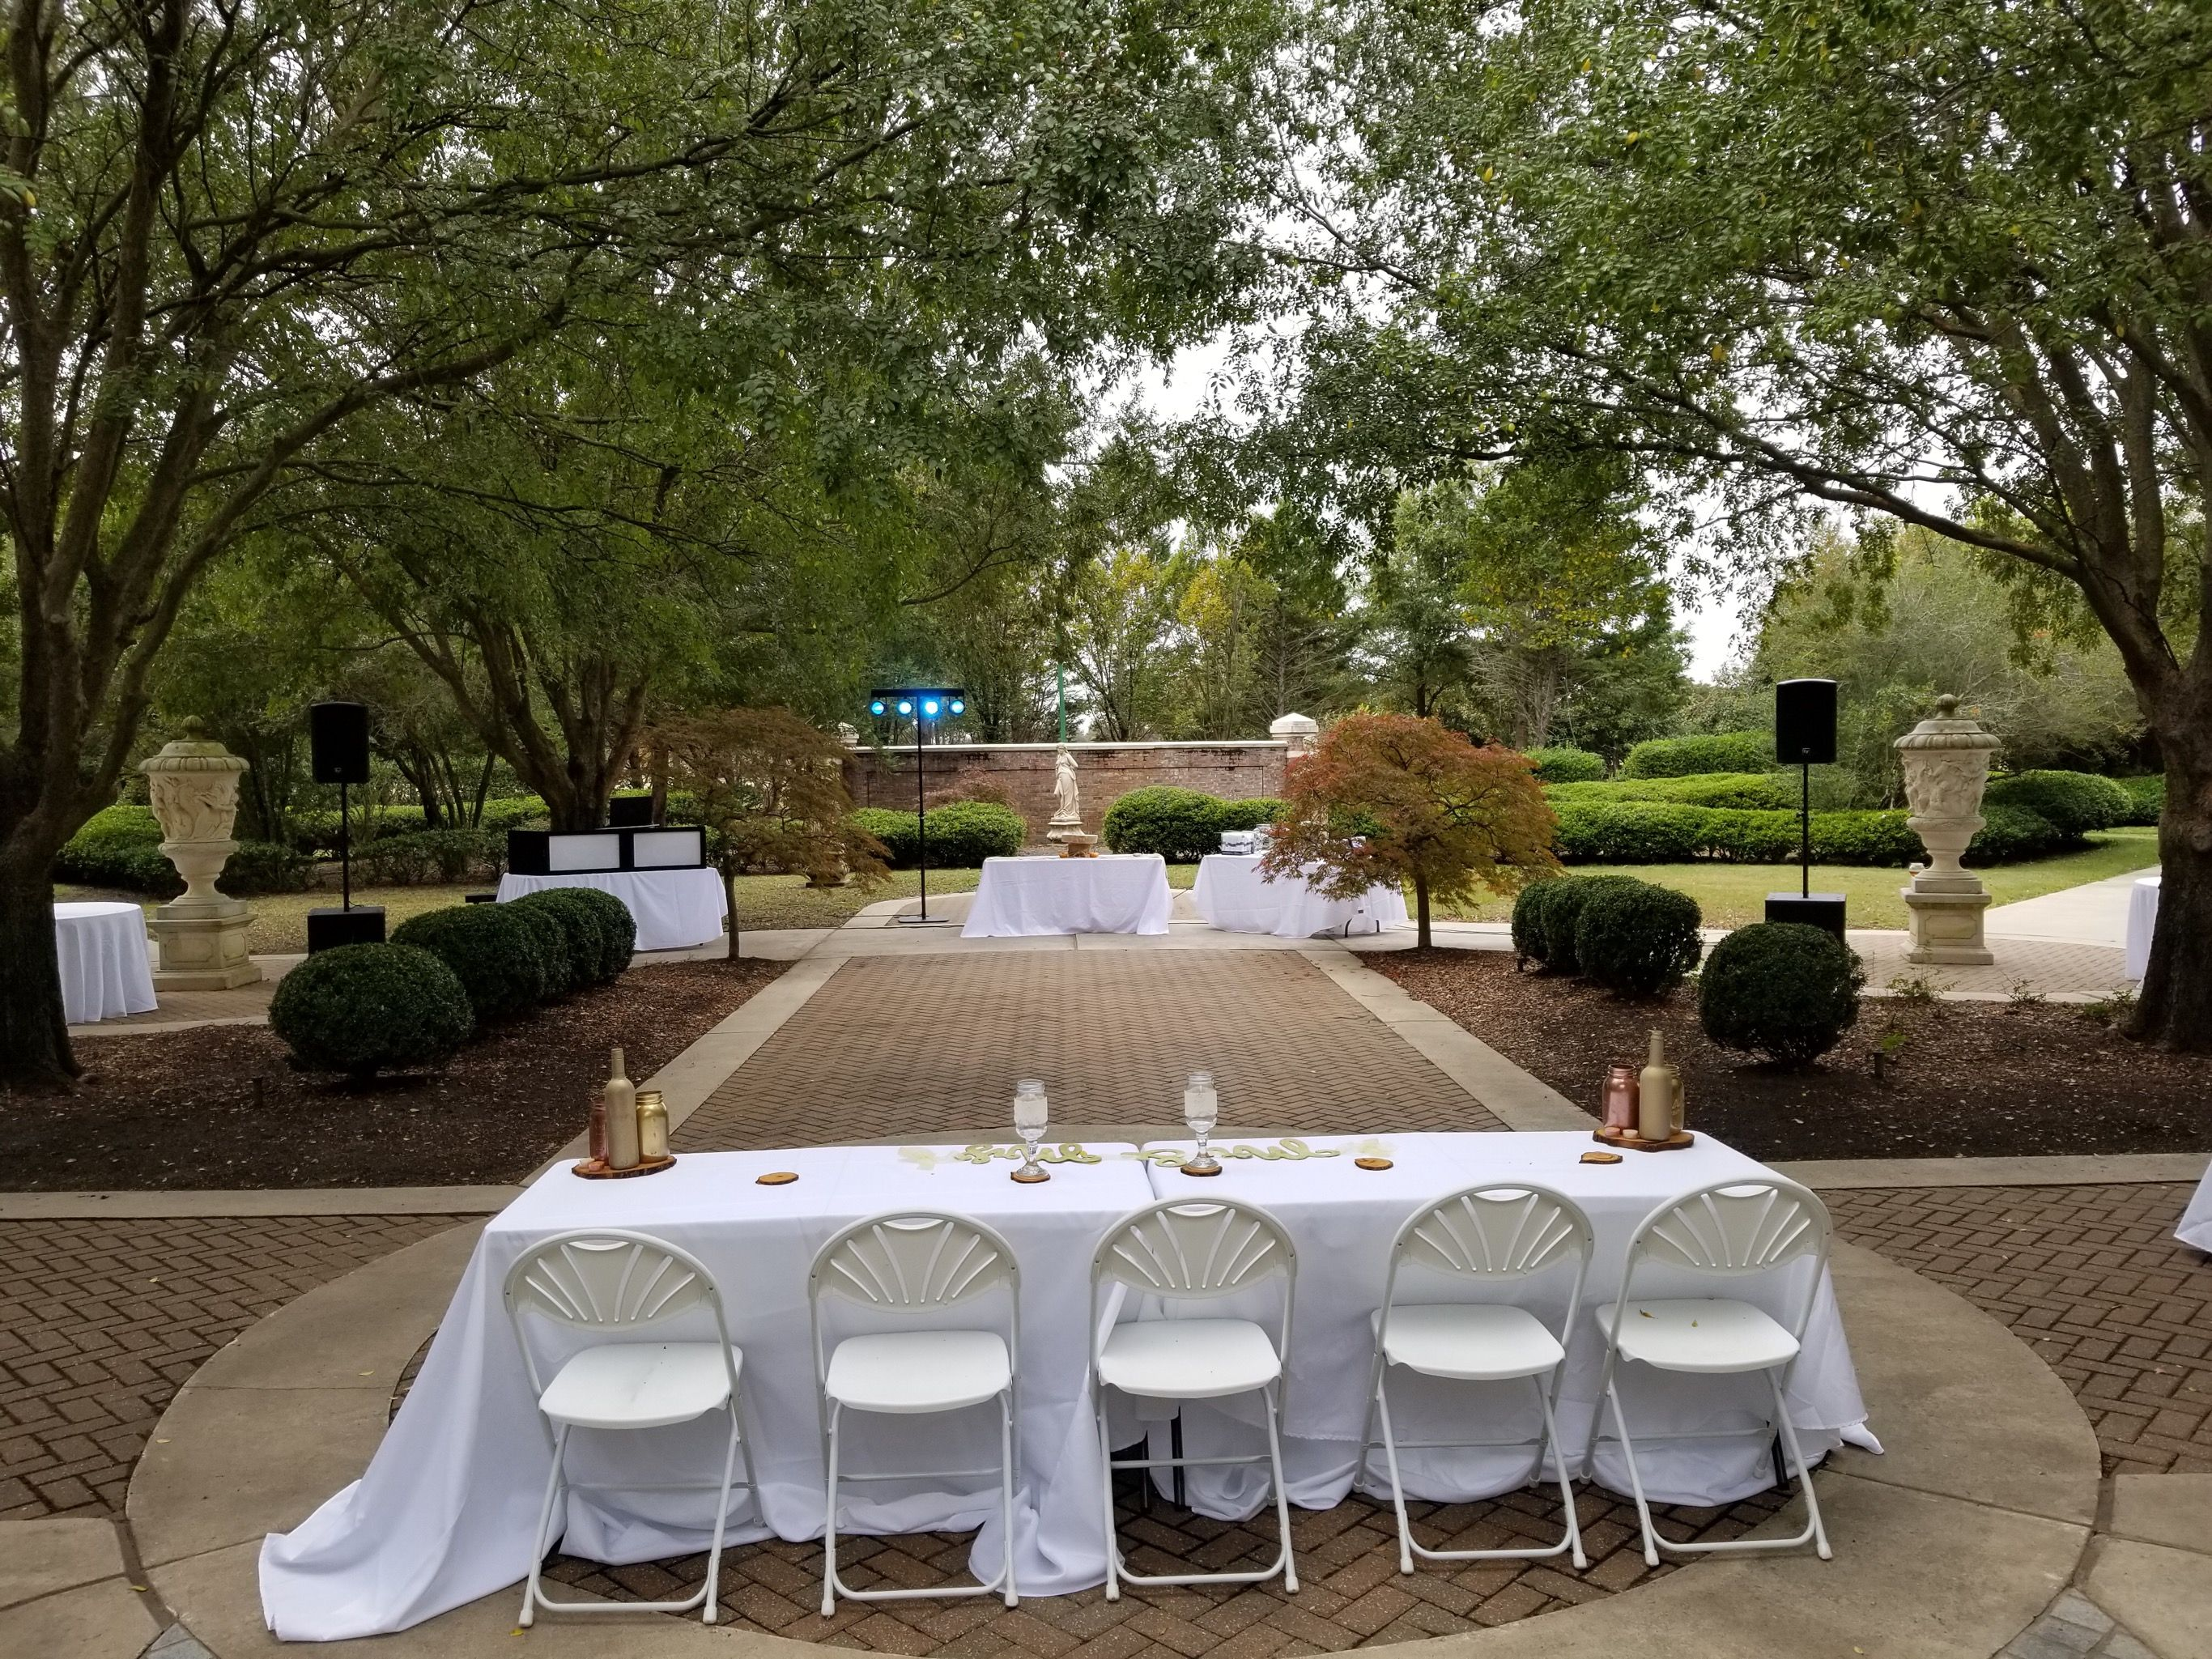 Outdoor Wedding Adams Estates Leachville, AR .jpeg